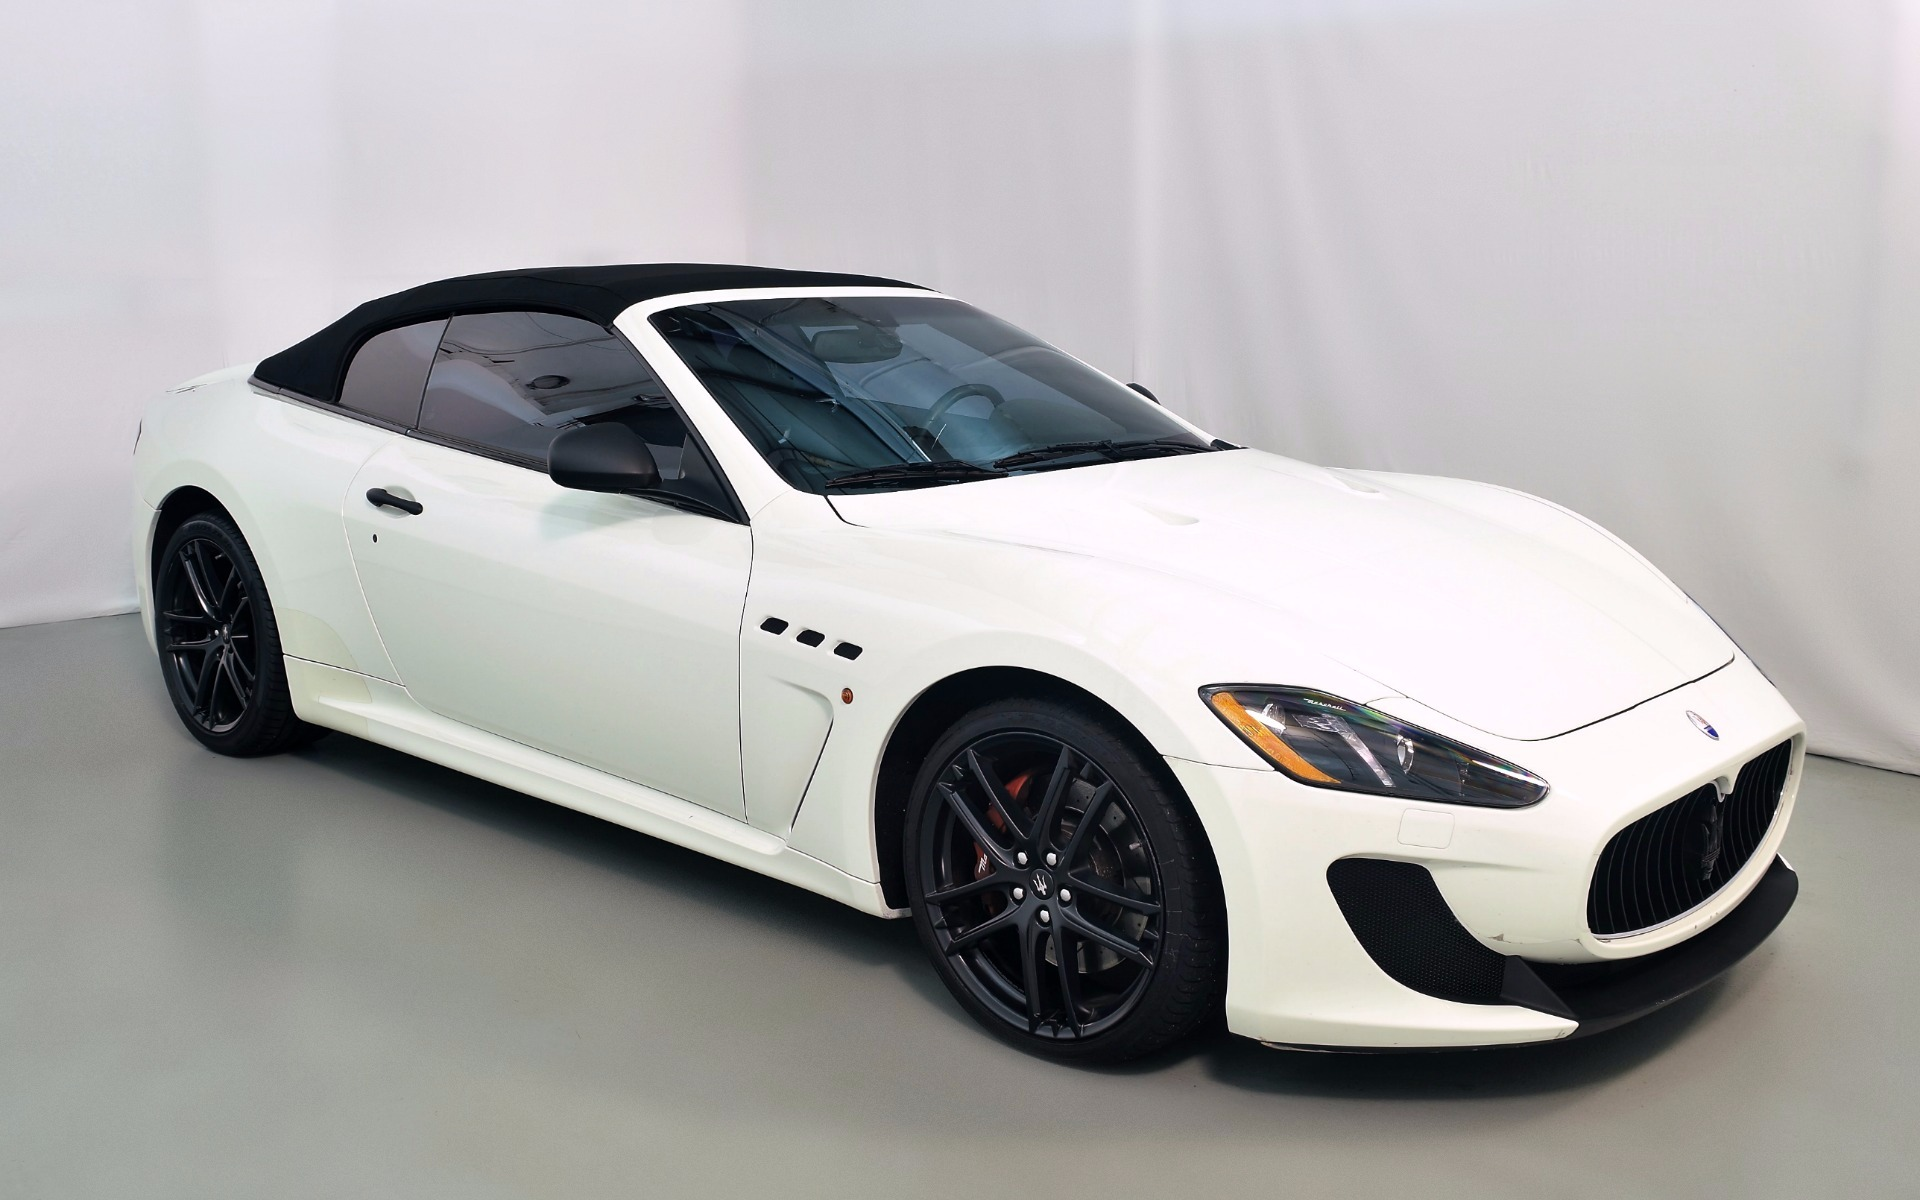 2013 Maserati GranTurismo MC Convertible Sport For Sale in